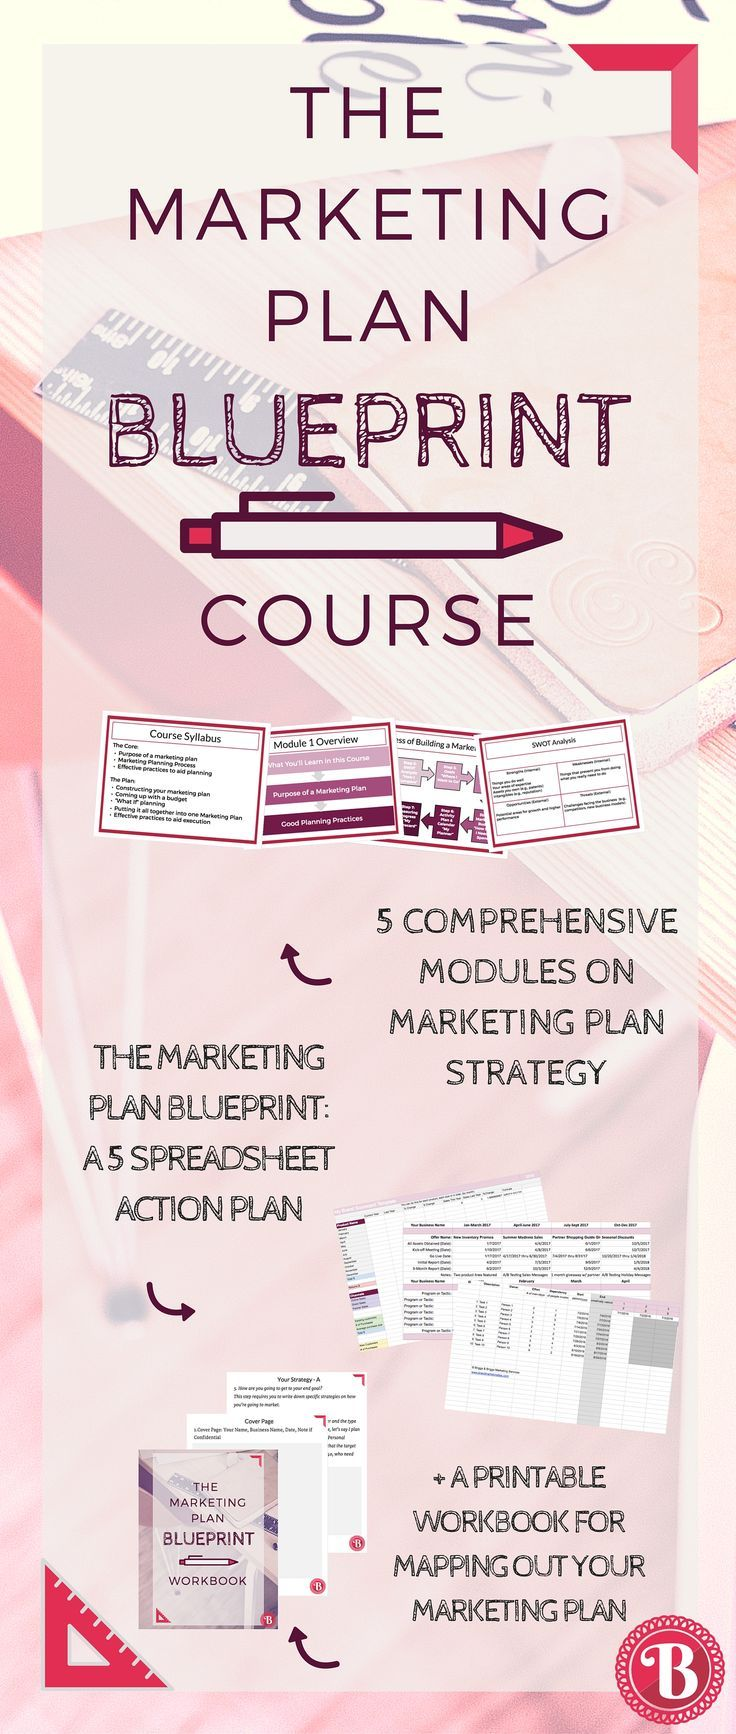 Introducing the marketing plan blueprint course module 1 is free introducing the marketing plan blueprint course module 1 is free you will walk away from this course with a complete marketing plan to move your business malvernweather Gallery